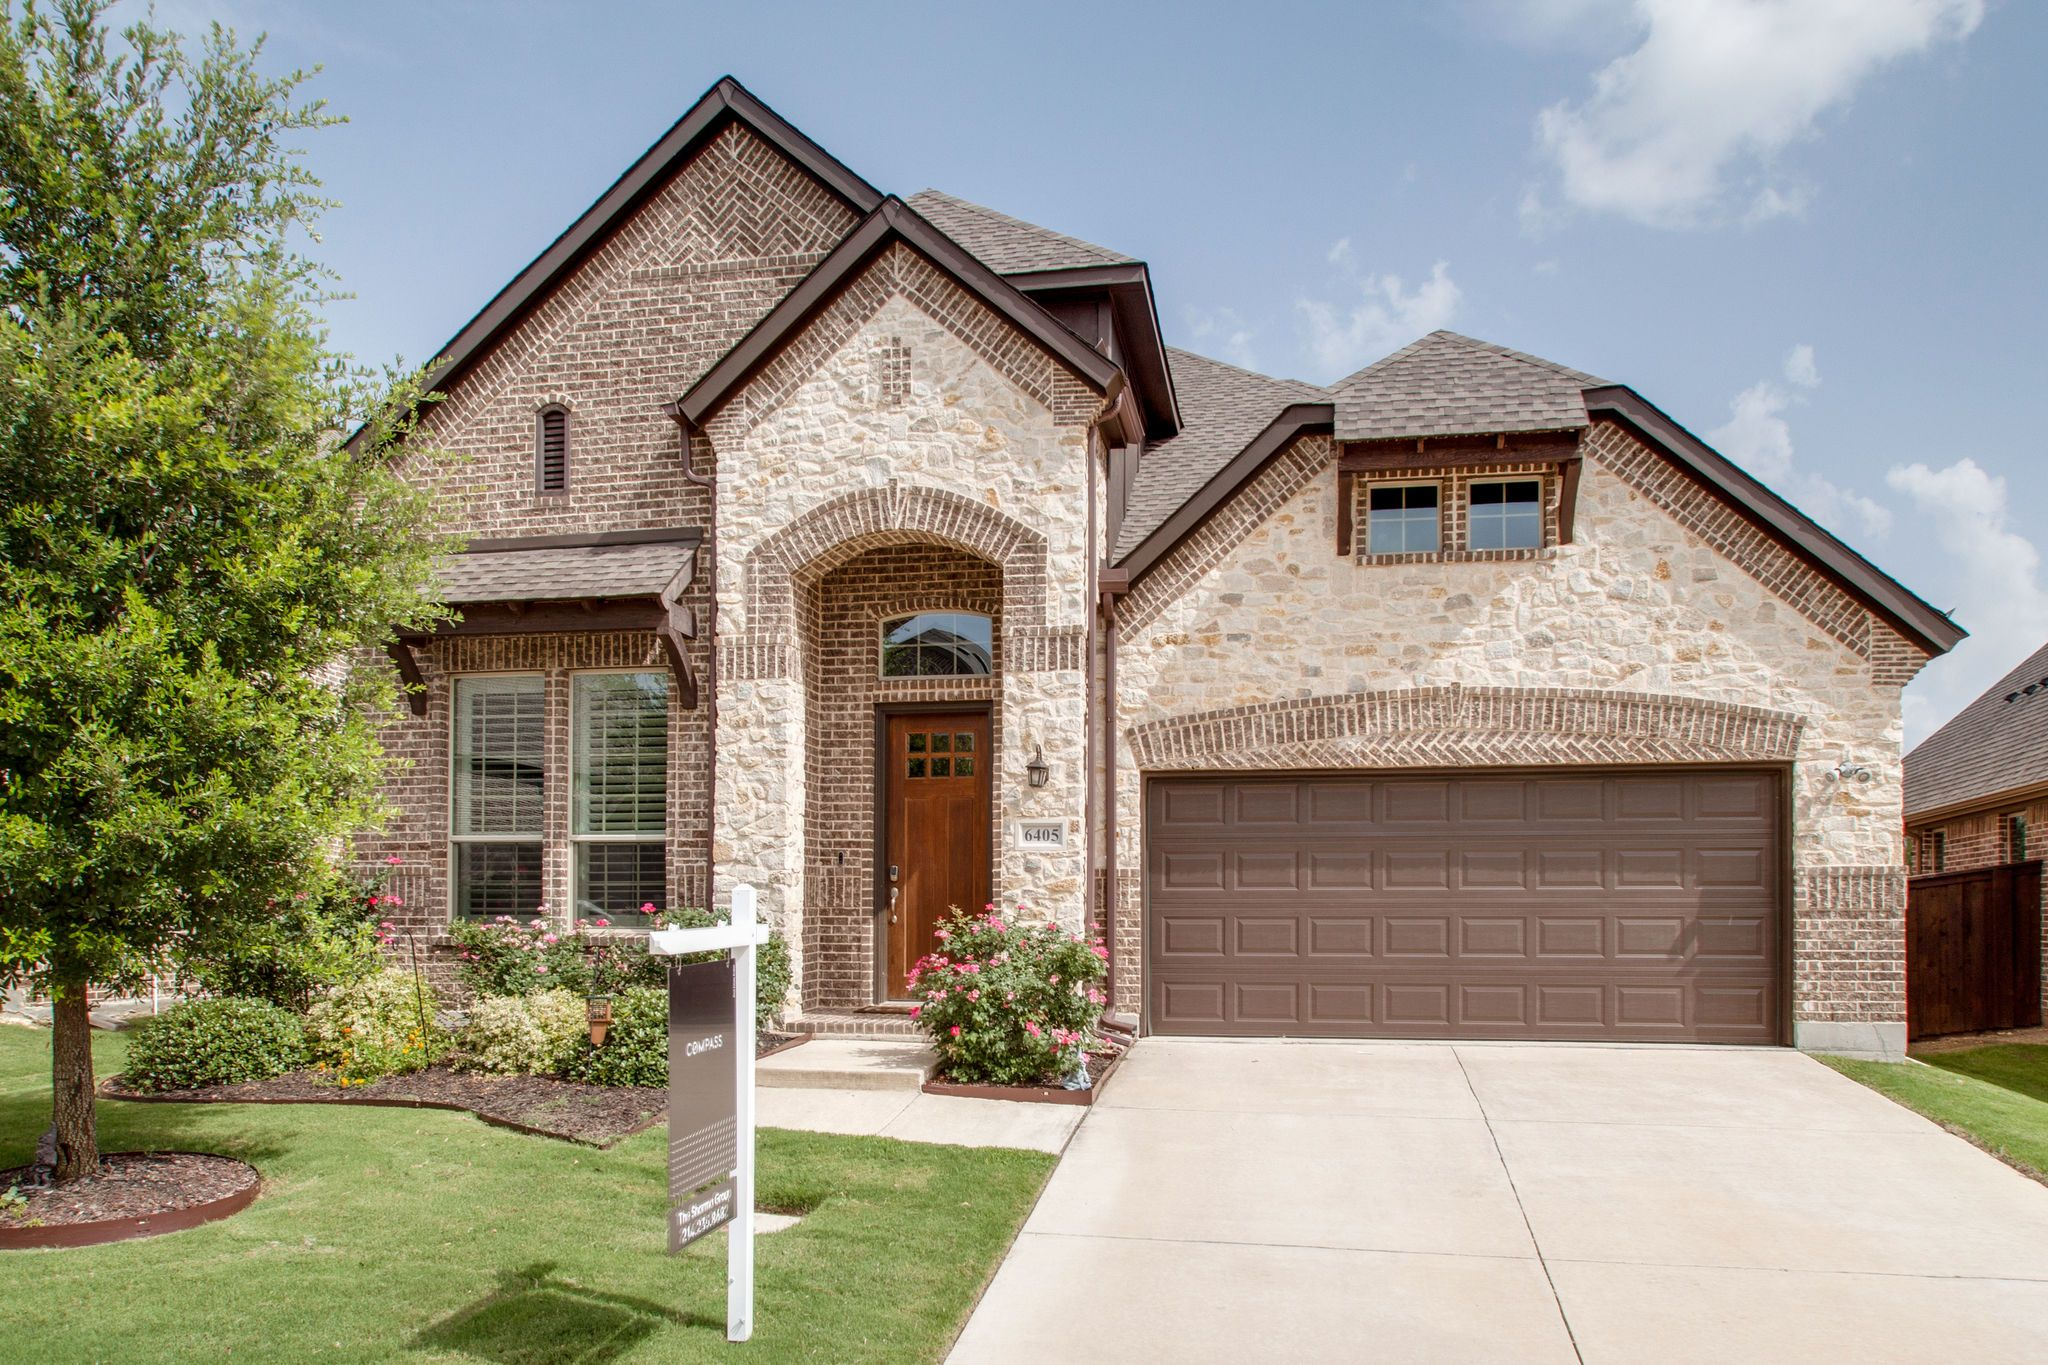 Homes For Sale In Flower Mound Flowermound Tx Dfw Real Estate House Styles Selling House